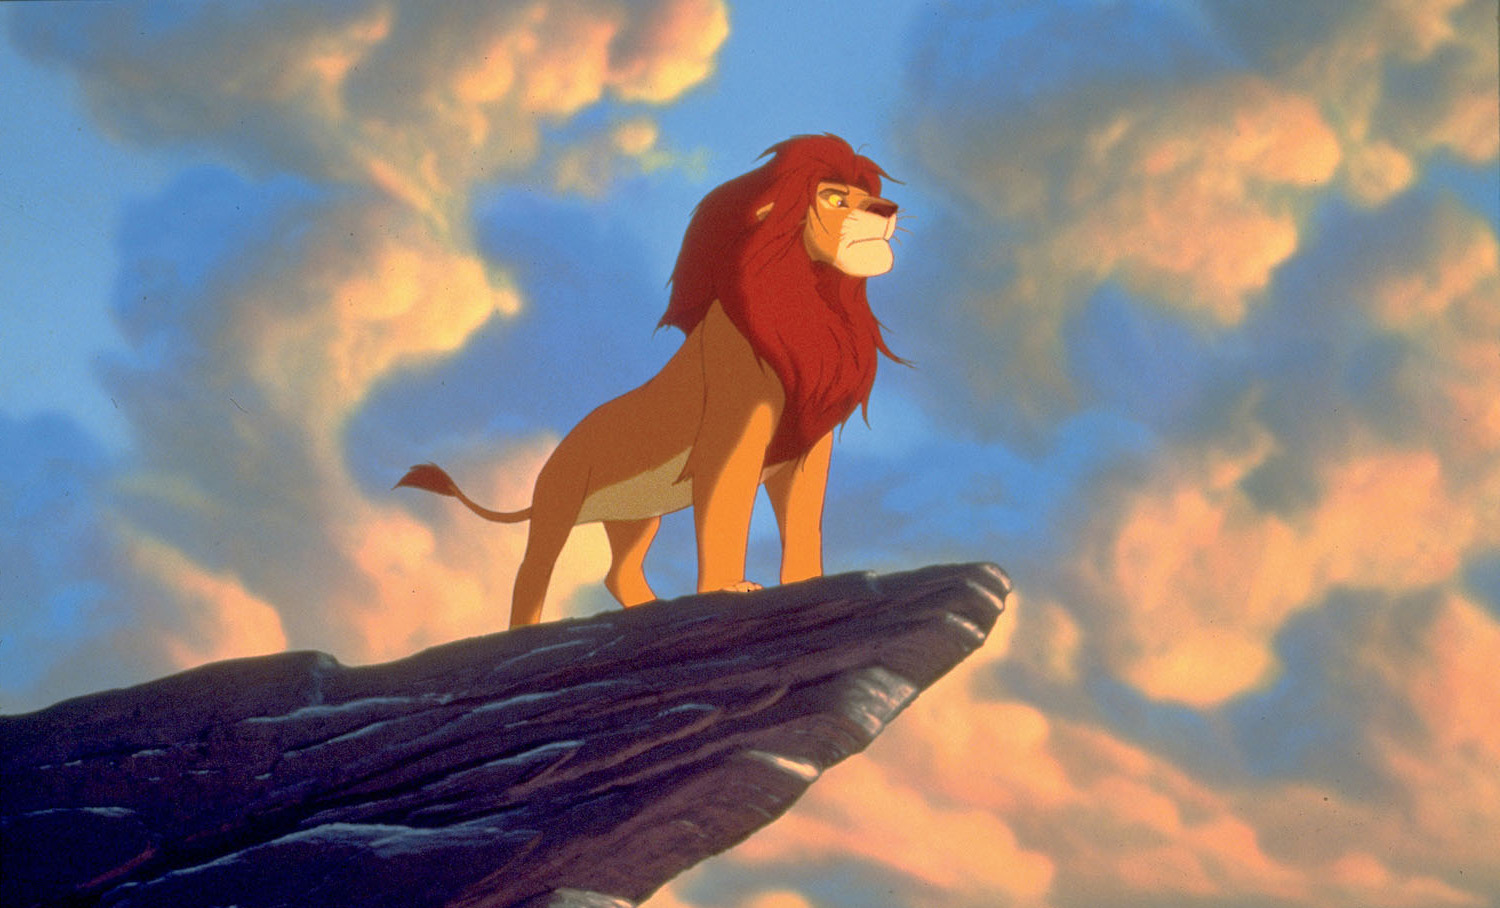 4k the lion king wallpapers high quality | download free